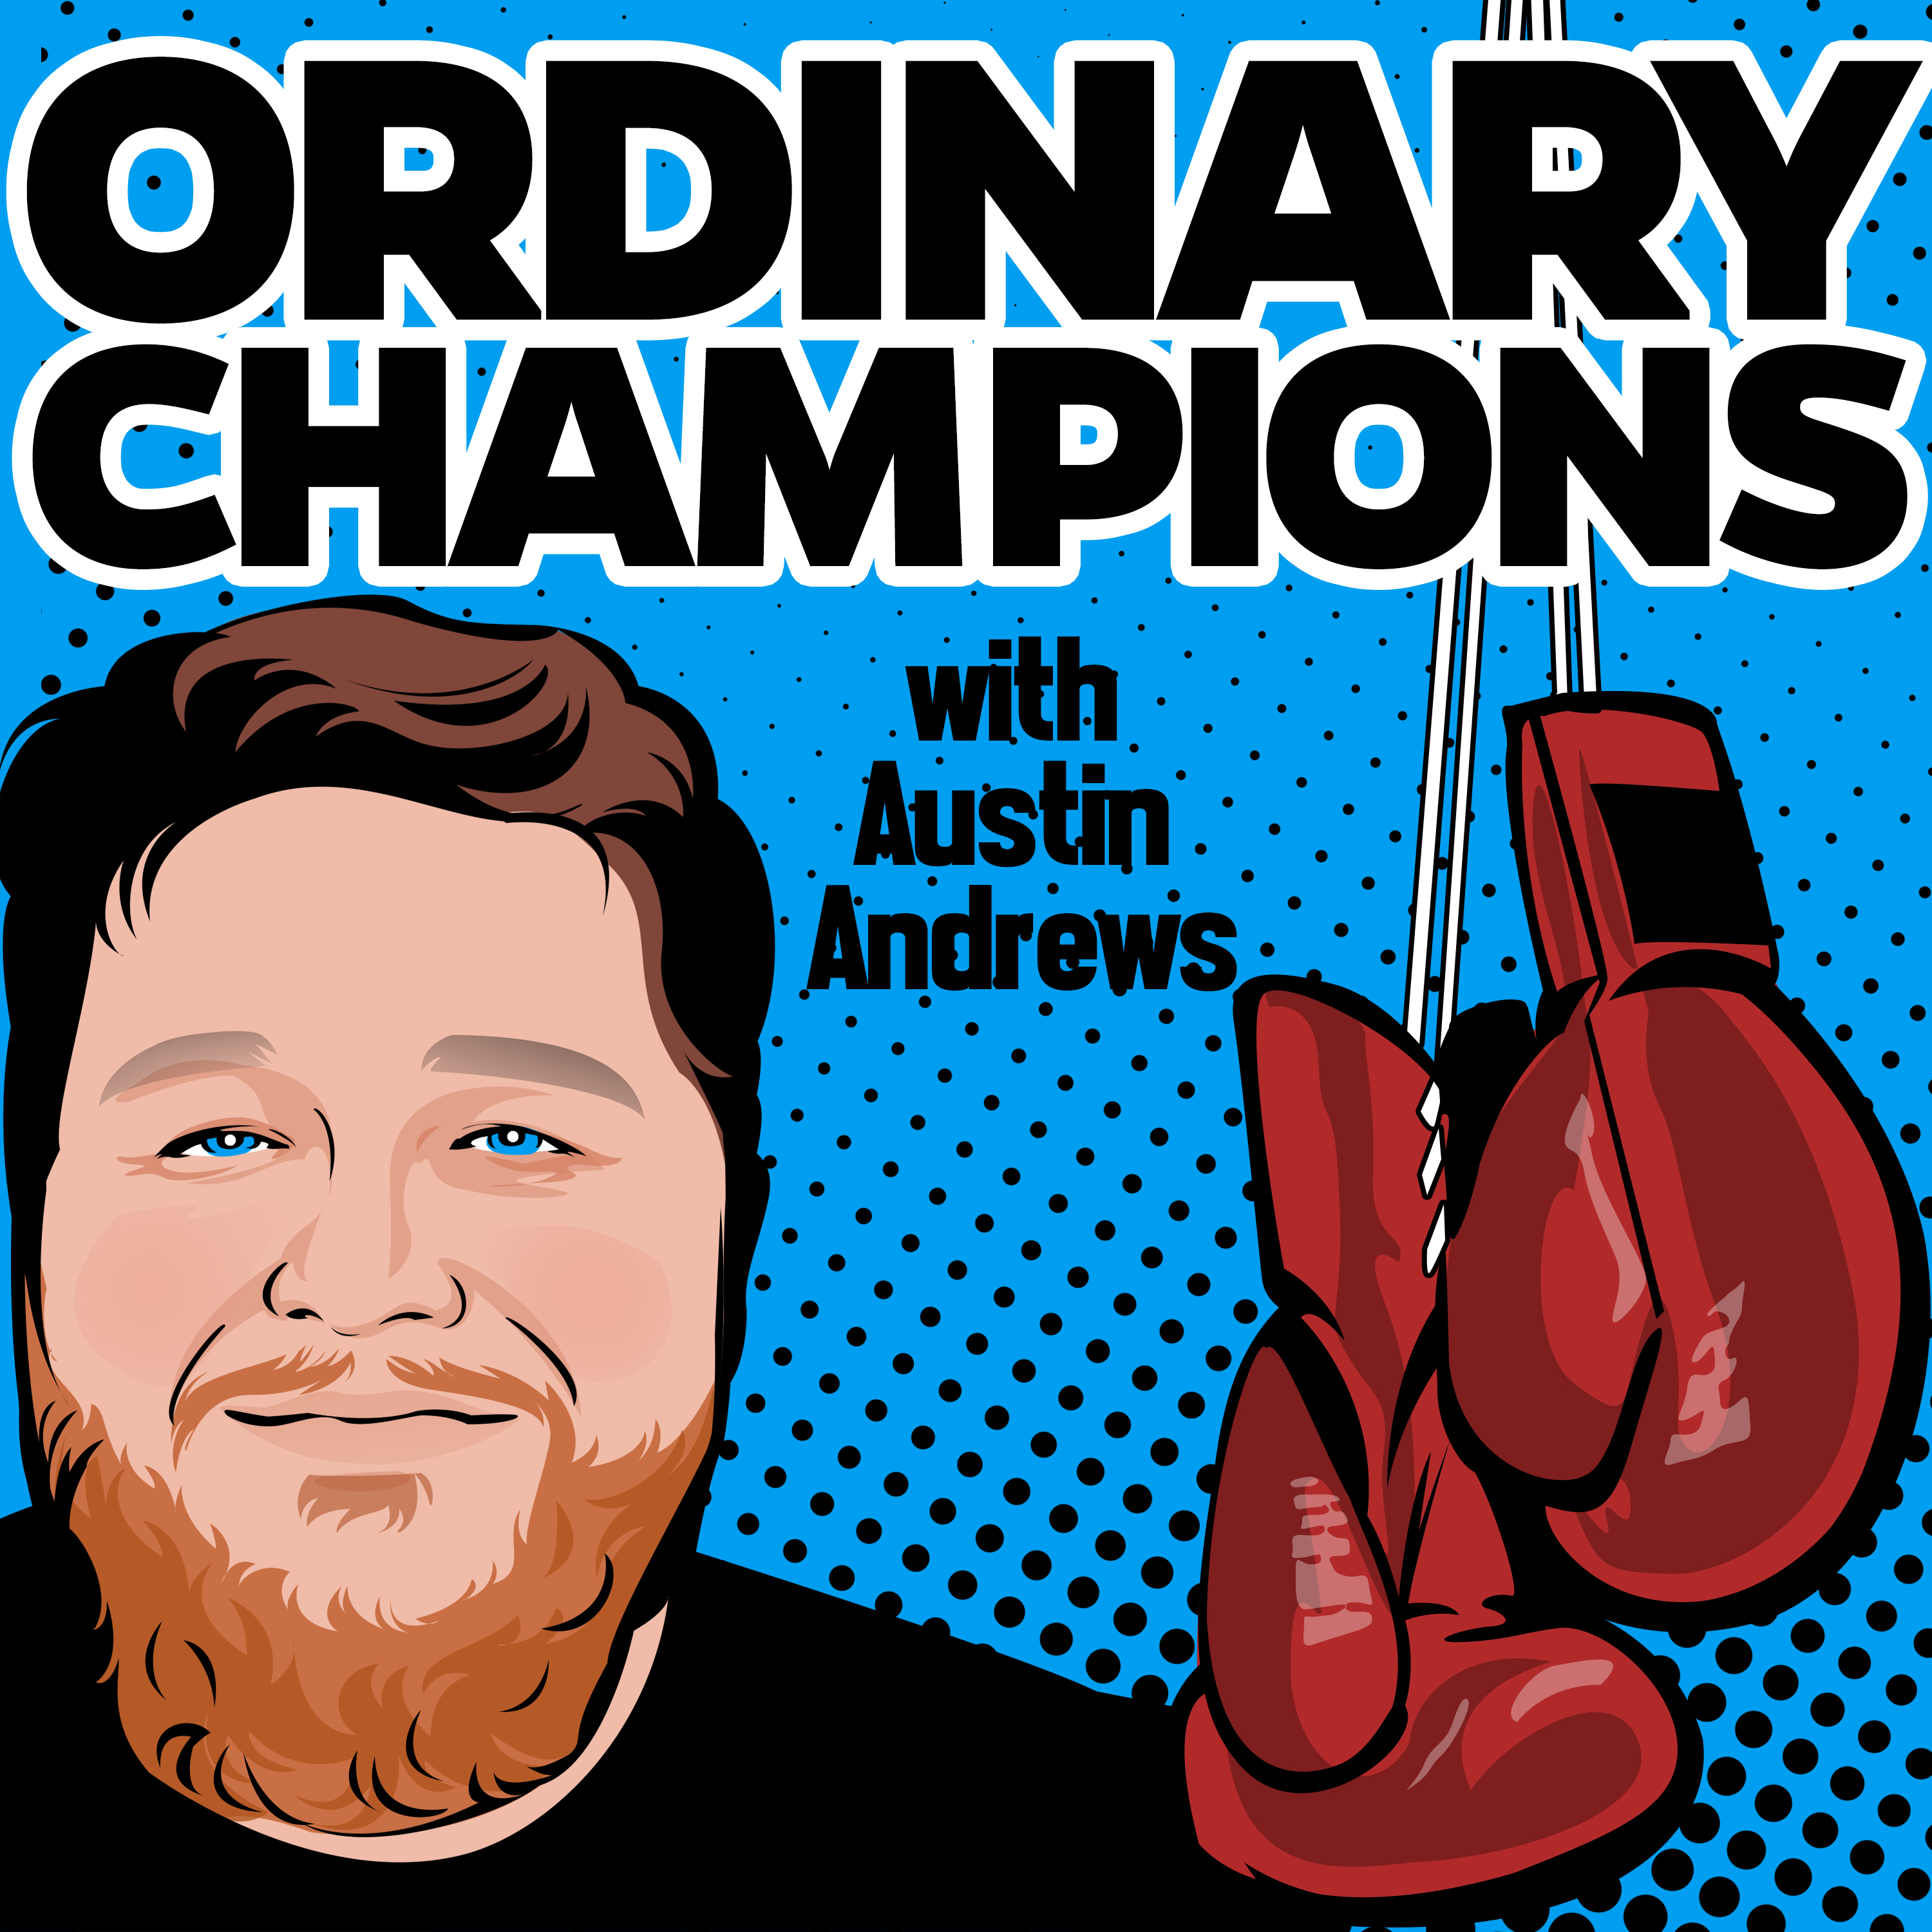 Artwork for 011 Randy Budzinski- He Promised his mom on her death bed that he'd get healthy. And he has.- Ordinary Champions